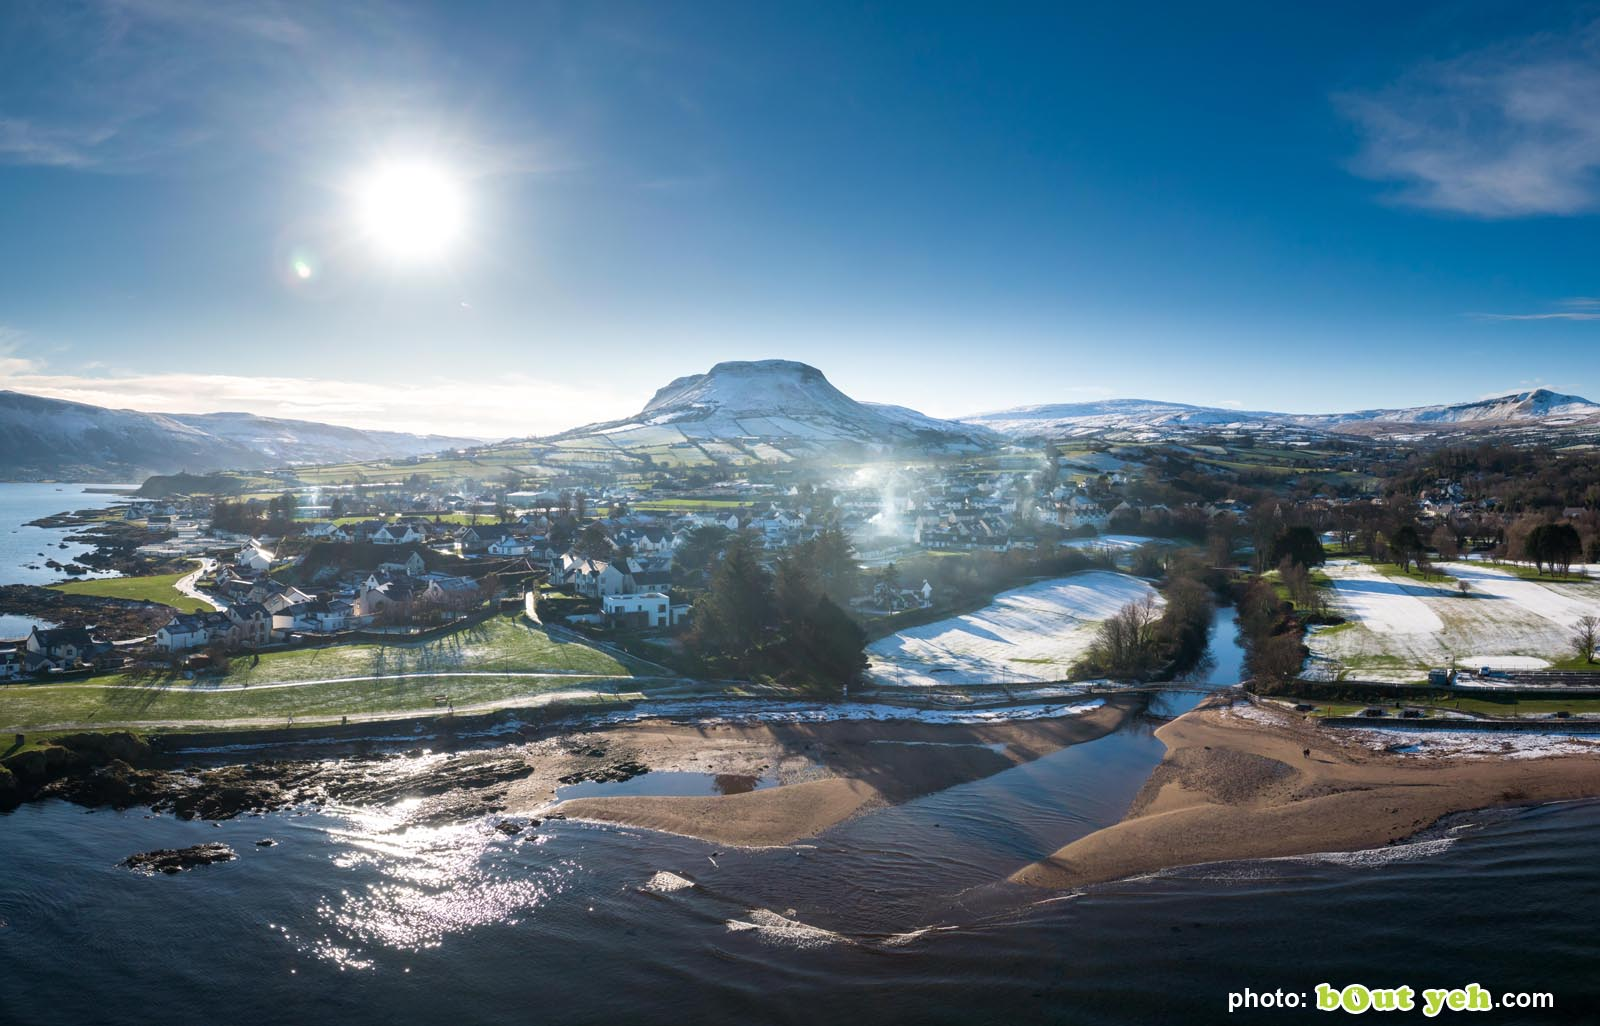 Aerial photo of Cushendall and Tievebulliagh by Bout Yeh photographers Belfast. Photo 230121